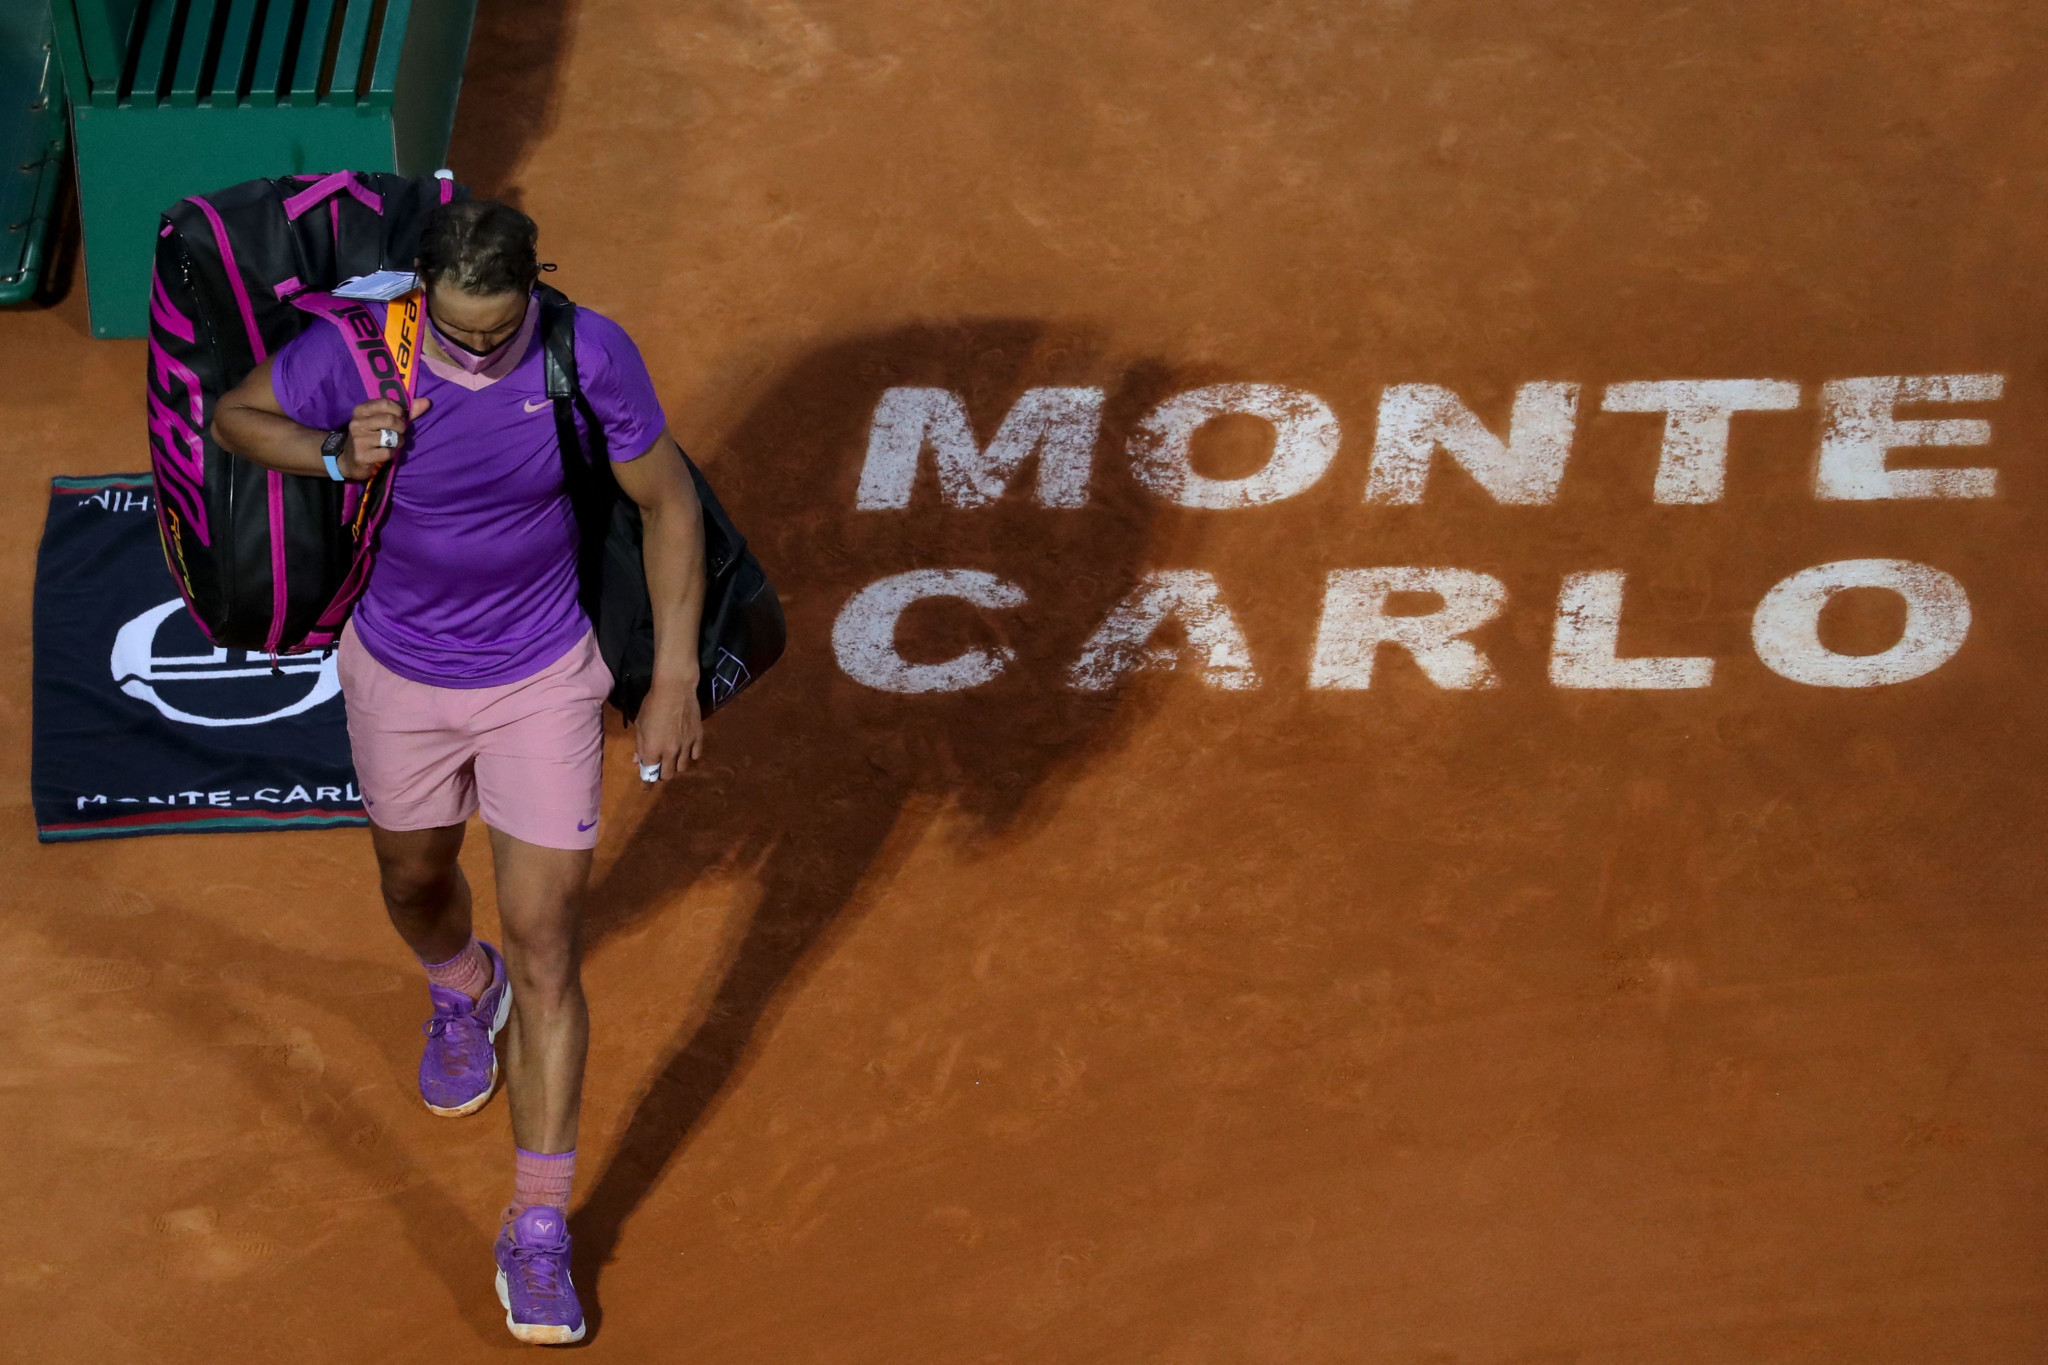 Rafael Nadal, playing in his first tournament since the Australian Open in February, fell at the quarter-finals of the Monte-Carlo Masters ©Getty Images